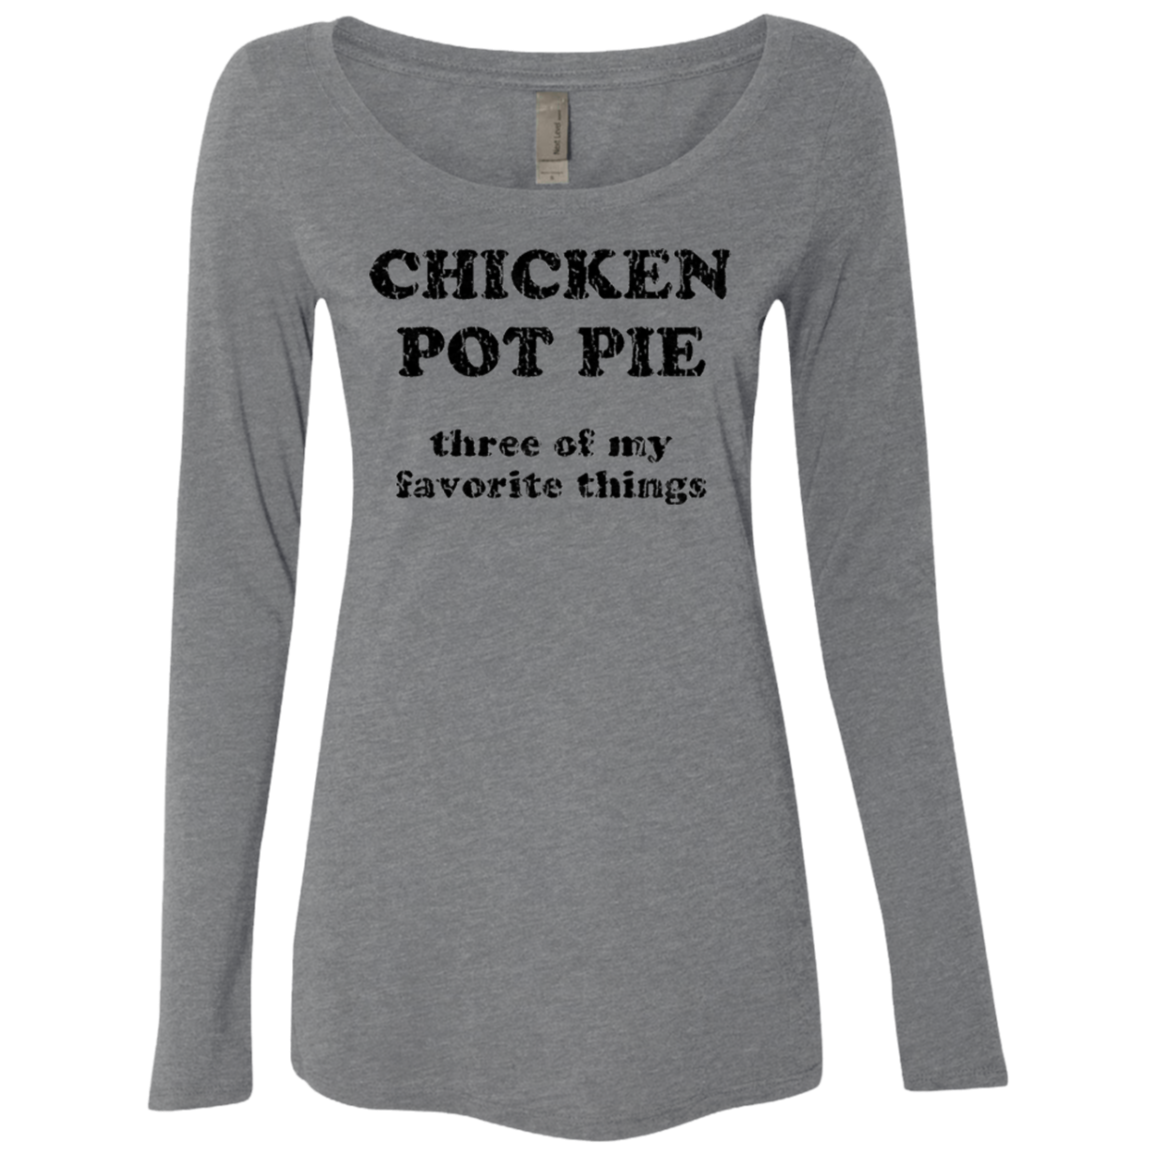 Chicken Pot Pie Three of my Favorite Things Women's Long Sleeve Tee - Trendy Tees